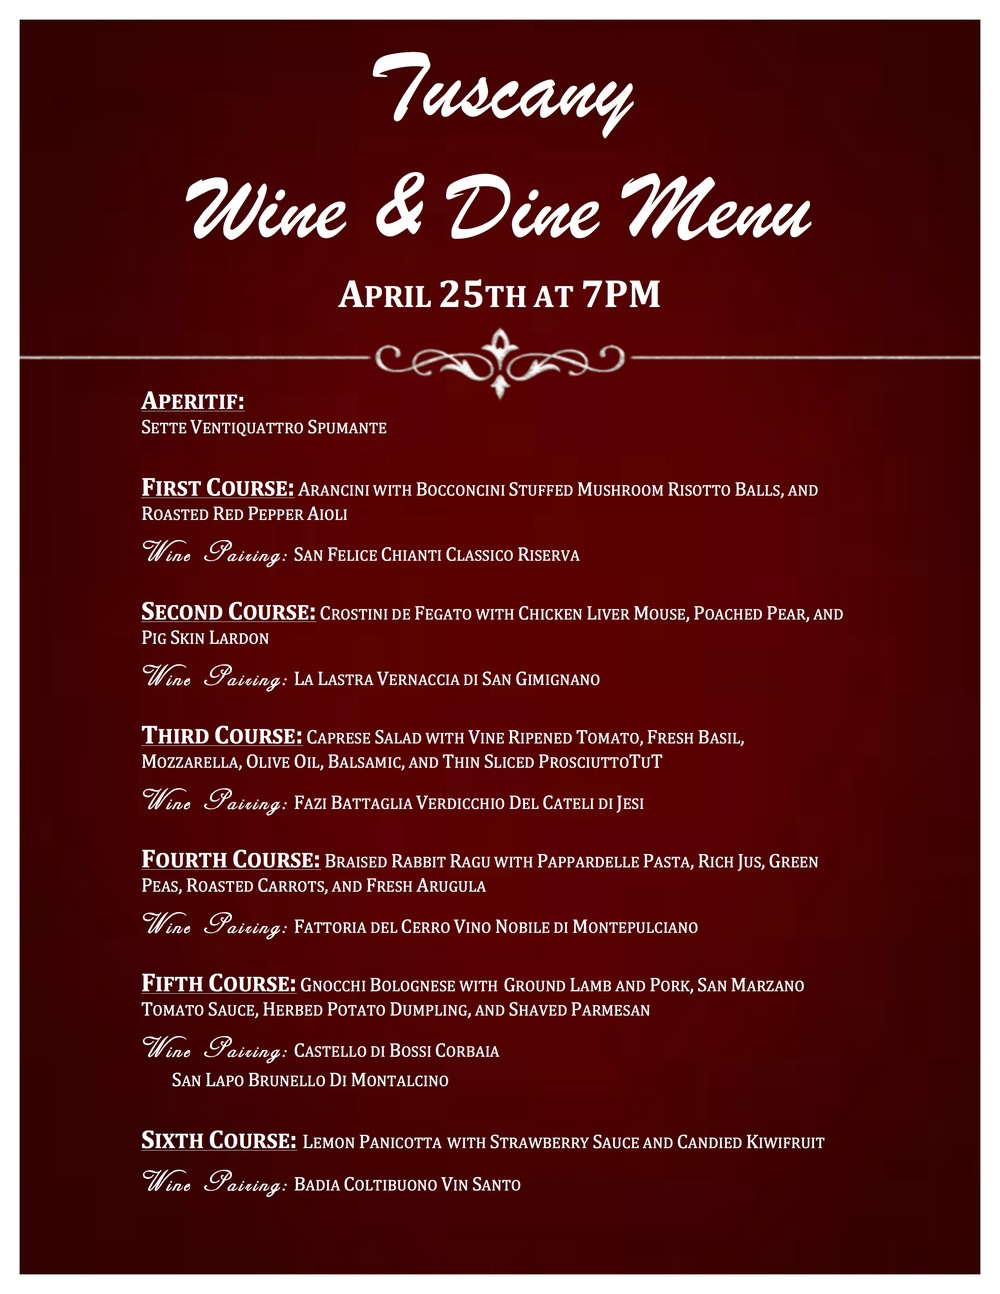 Tuscany Wine Menu